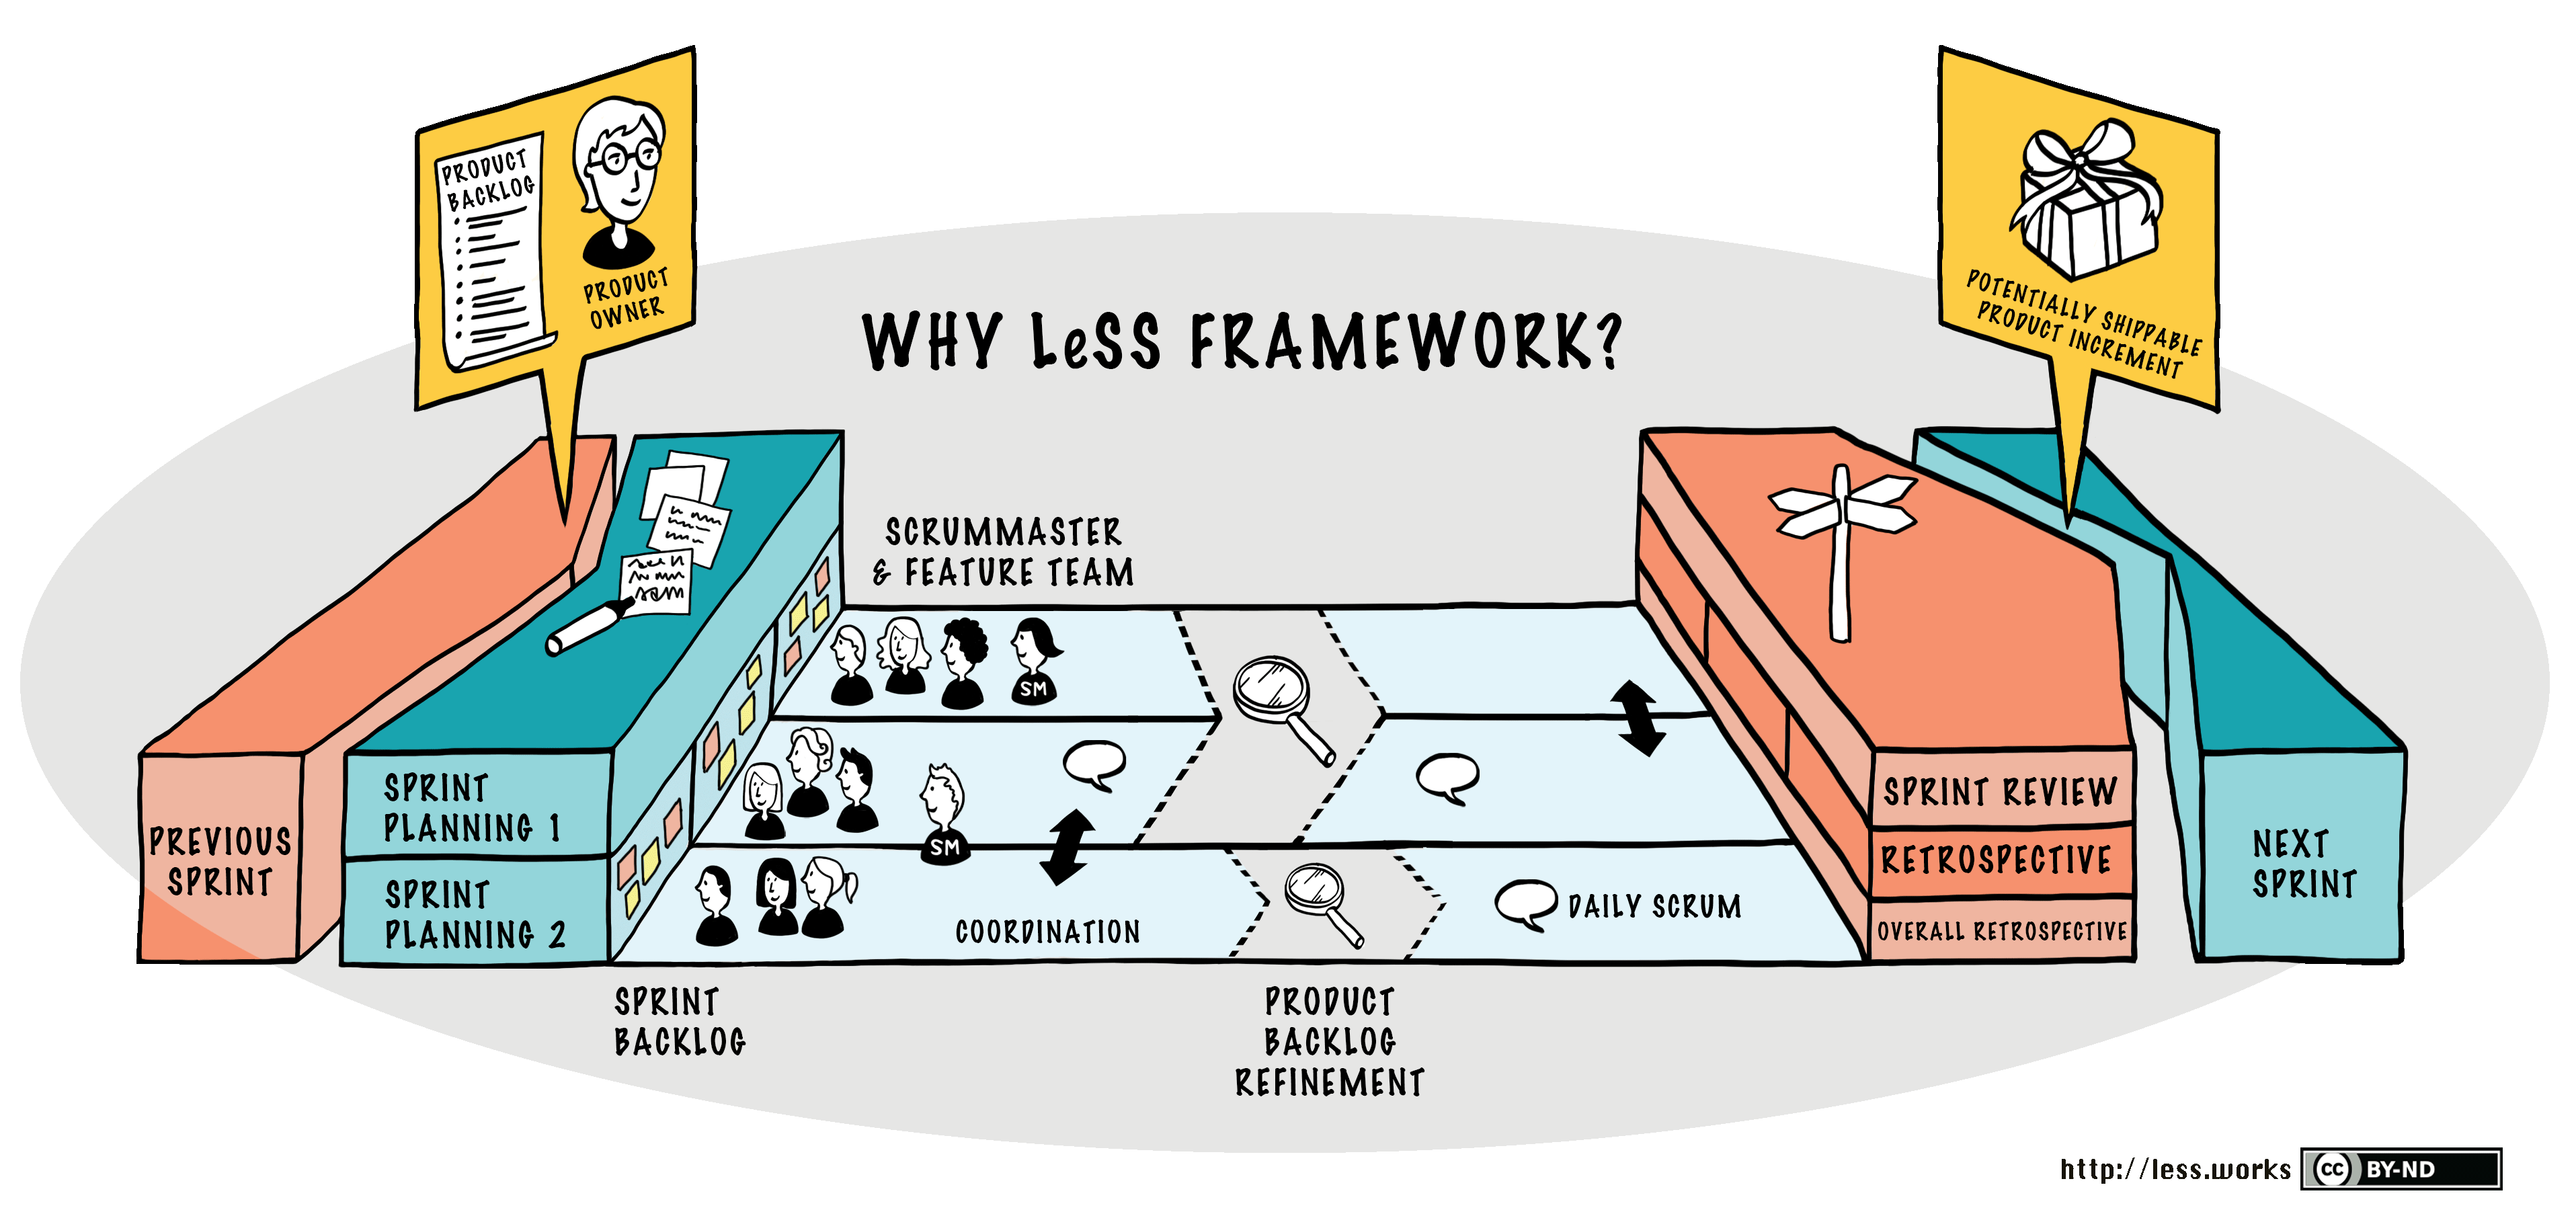 Illustration of why there should be less framework